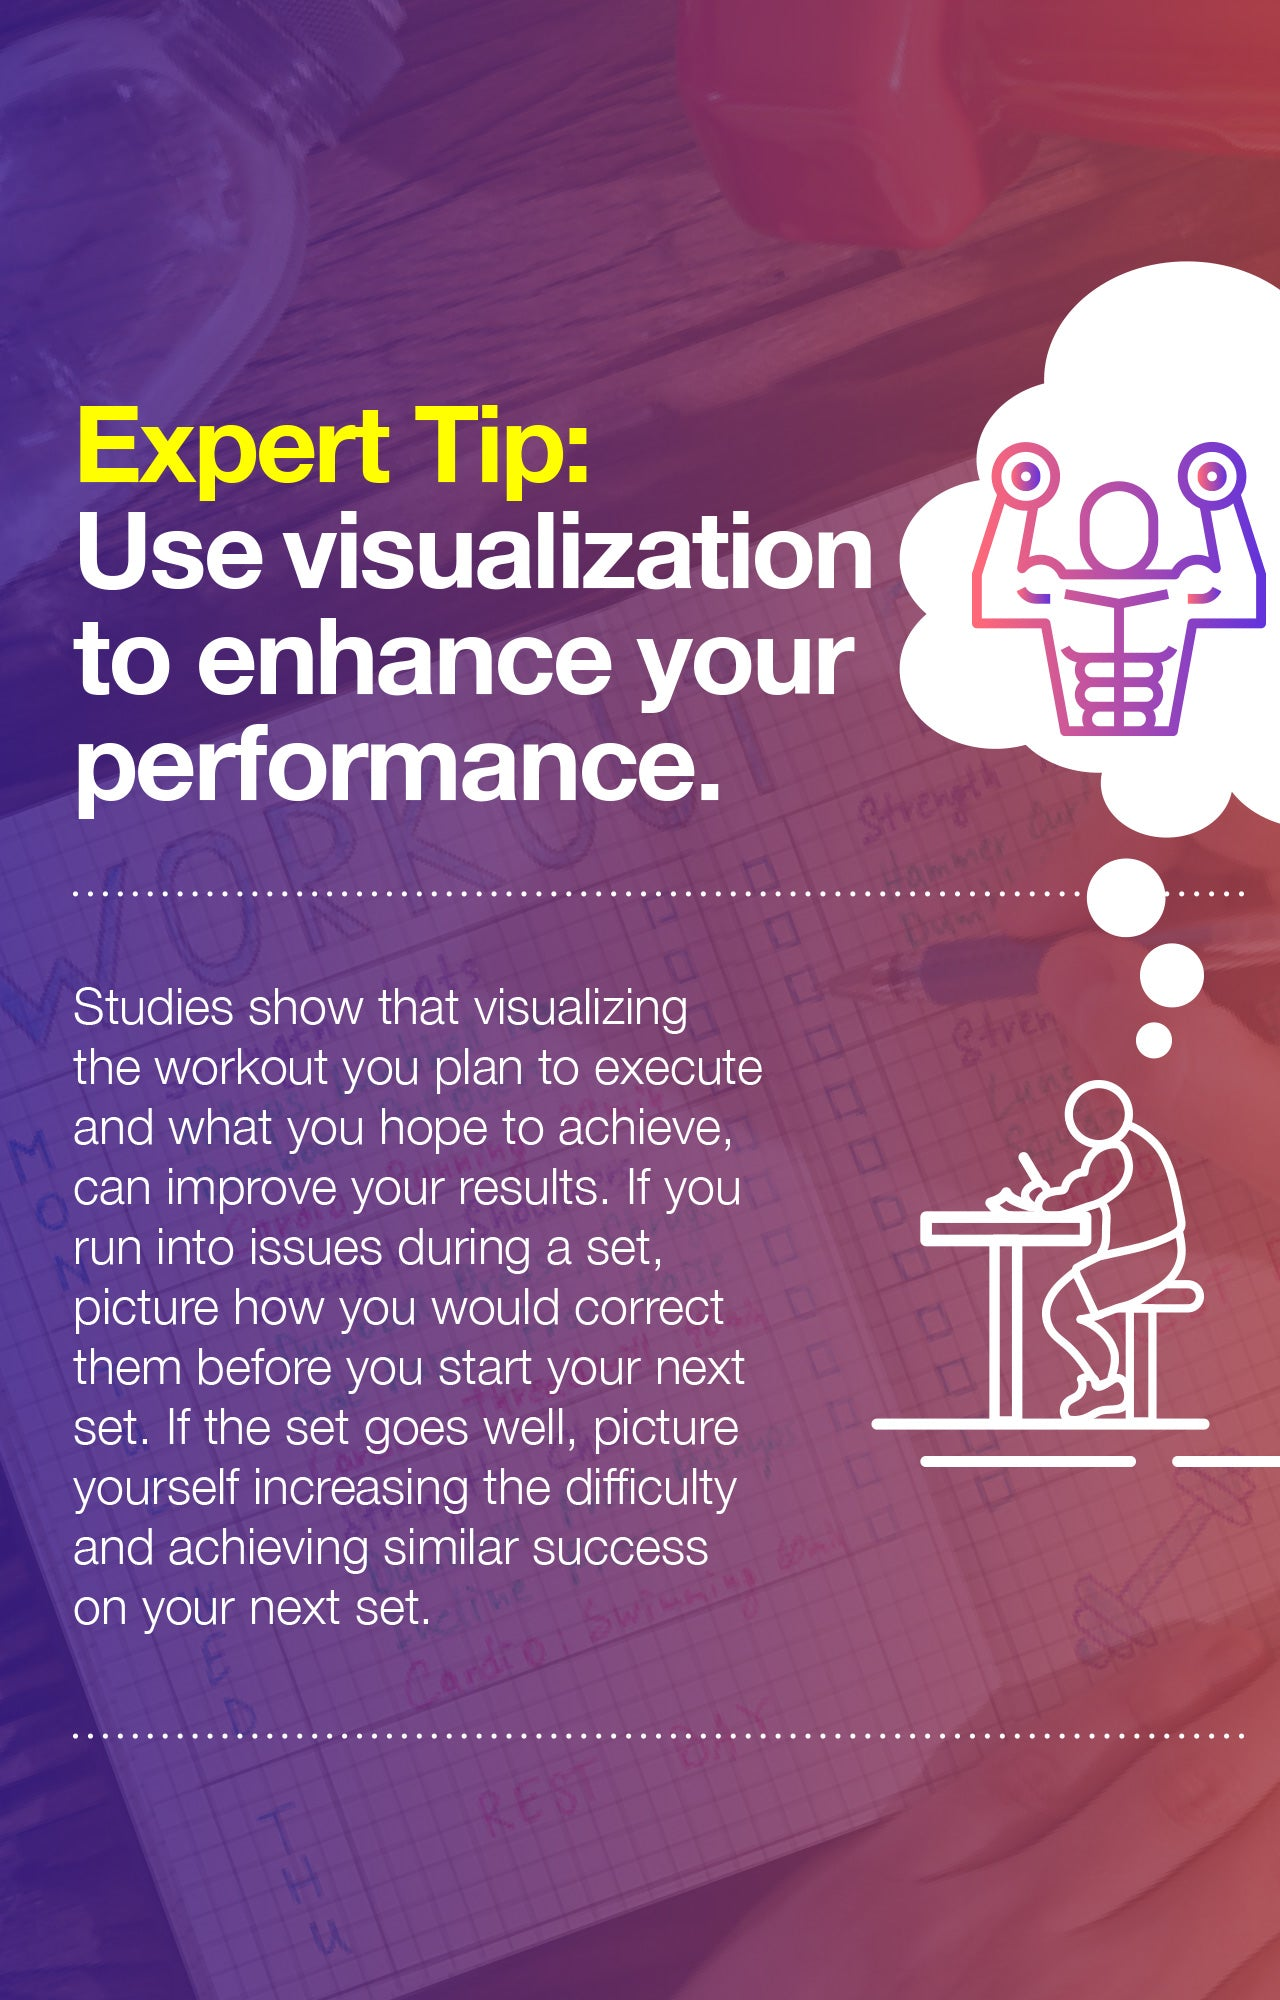 How visualization helps your performance